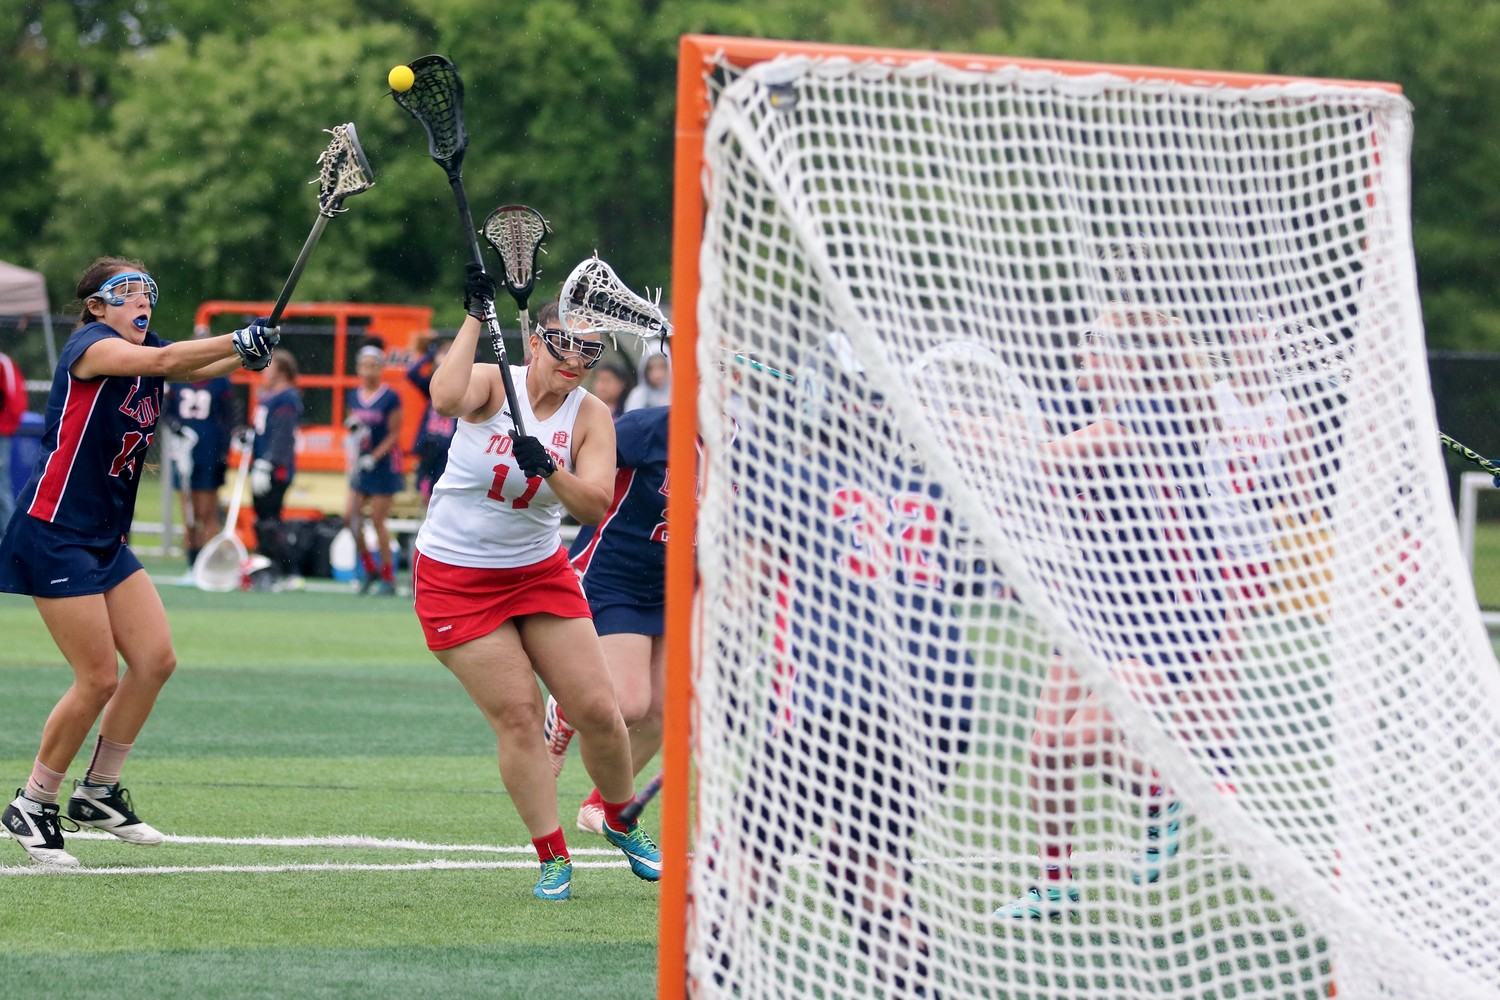 Jessica Costa takes a shot vs Lincoln in lacrosse match.